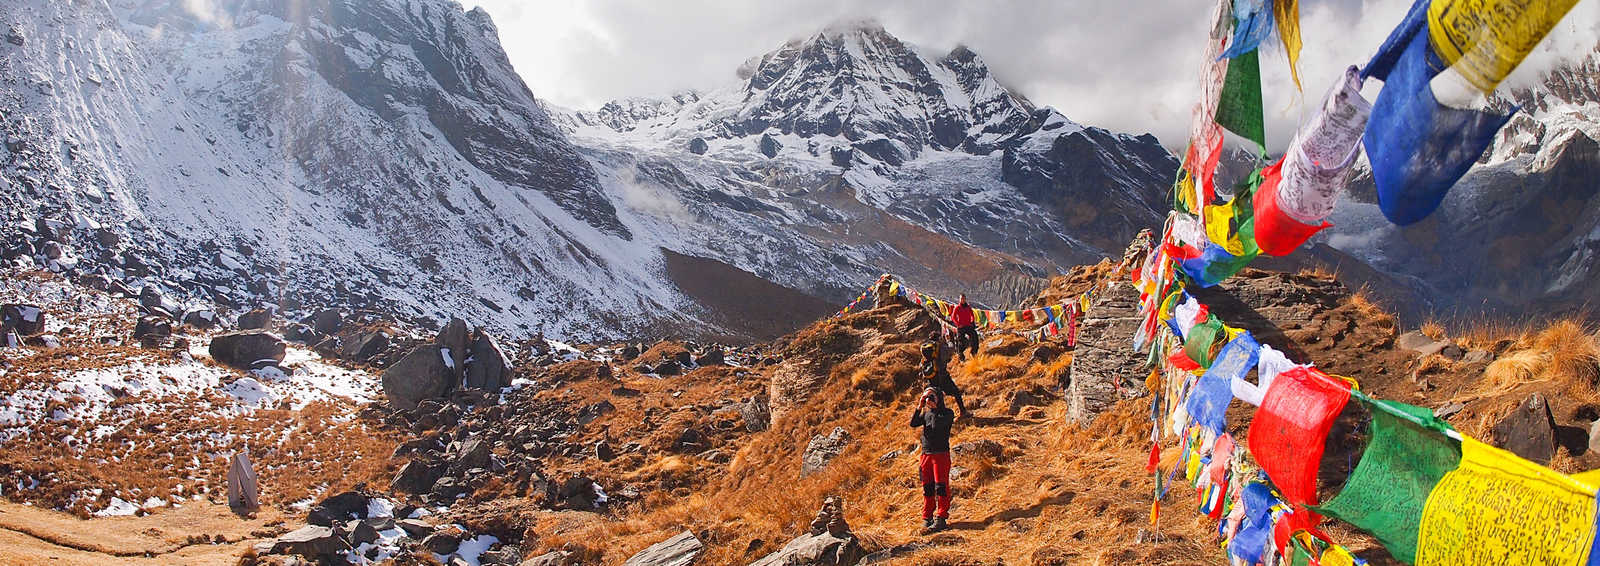 Annapurna Base Camp, Nepal